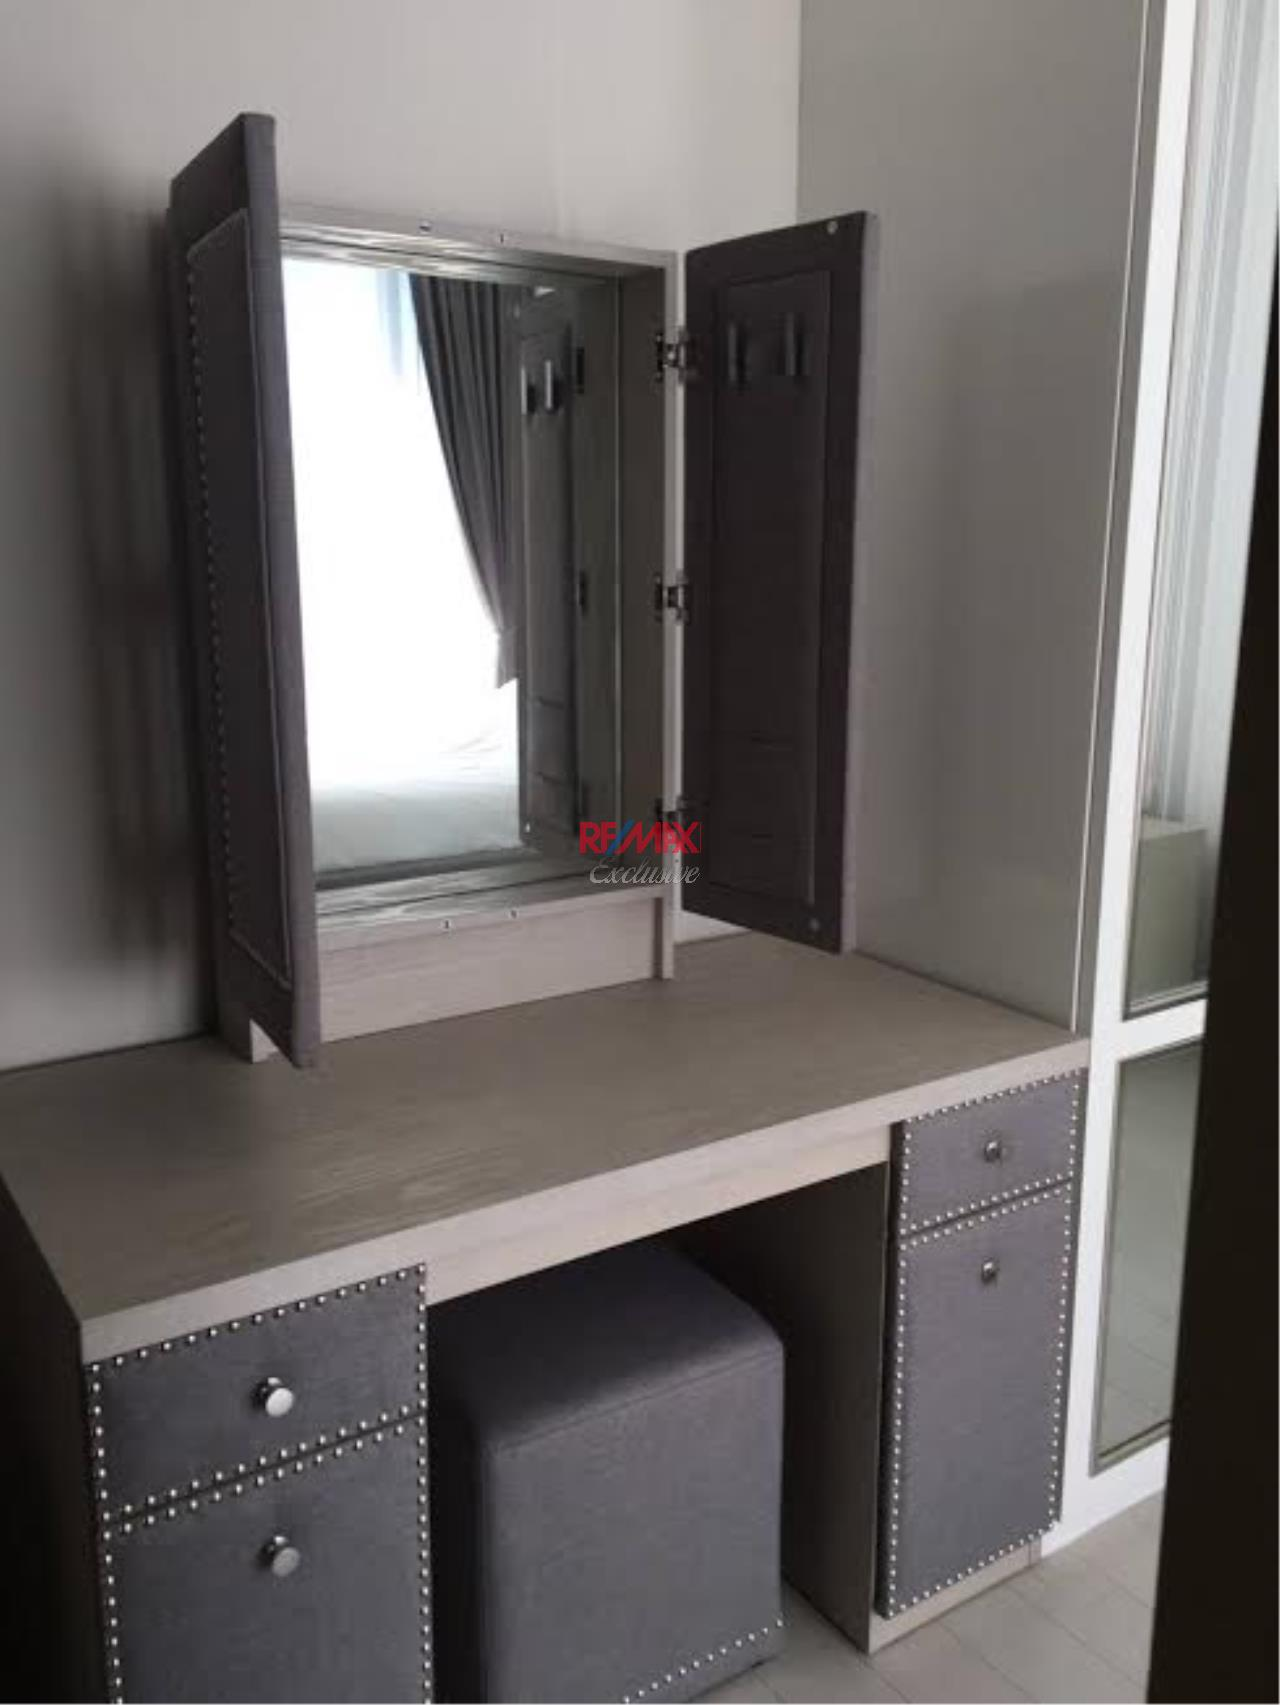 RE/MAX Exclusive Agency's Noble Ploenchit, 1 bedroom, 1 bathroom, For Rent Only 55,000 THB 5